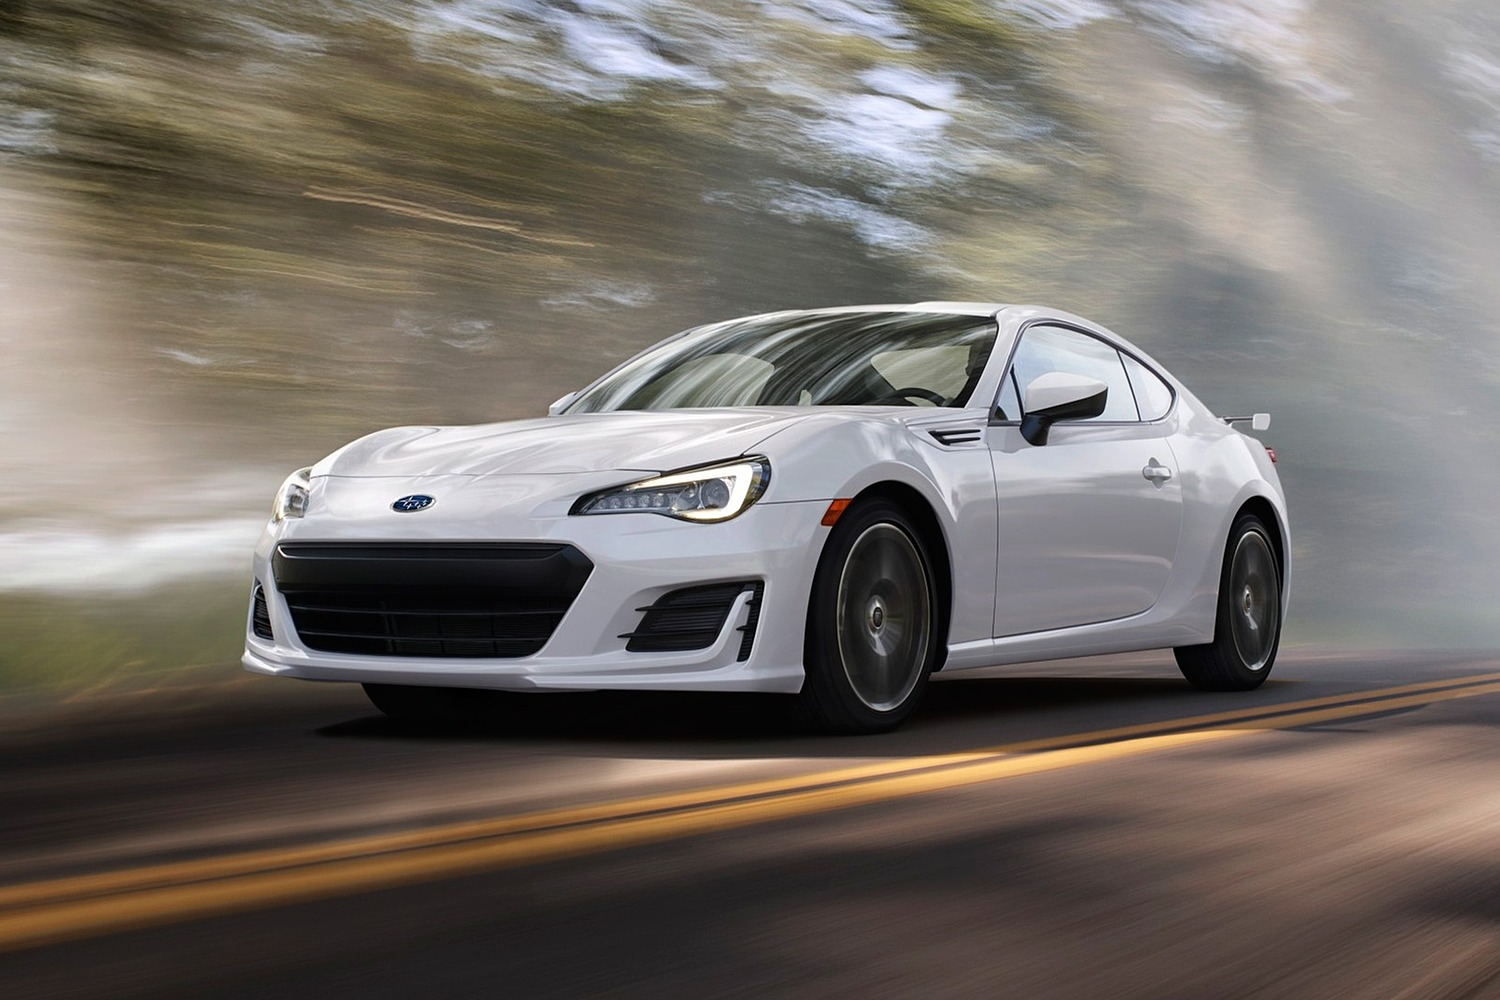 Subaru BRZ Limited Coupe Exterior Shown (2017 model year shown)